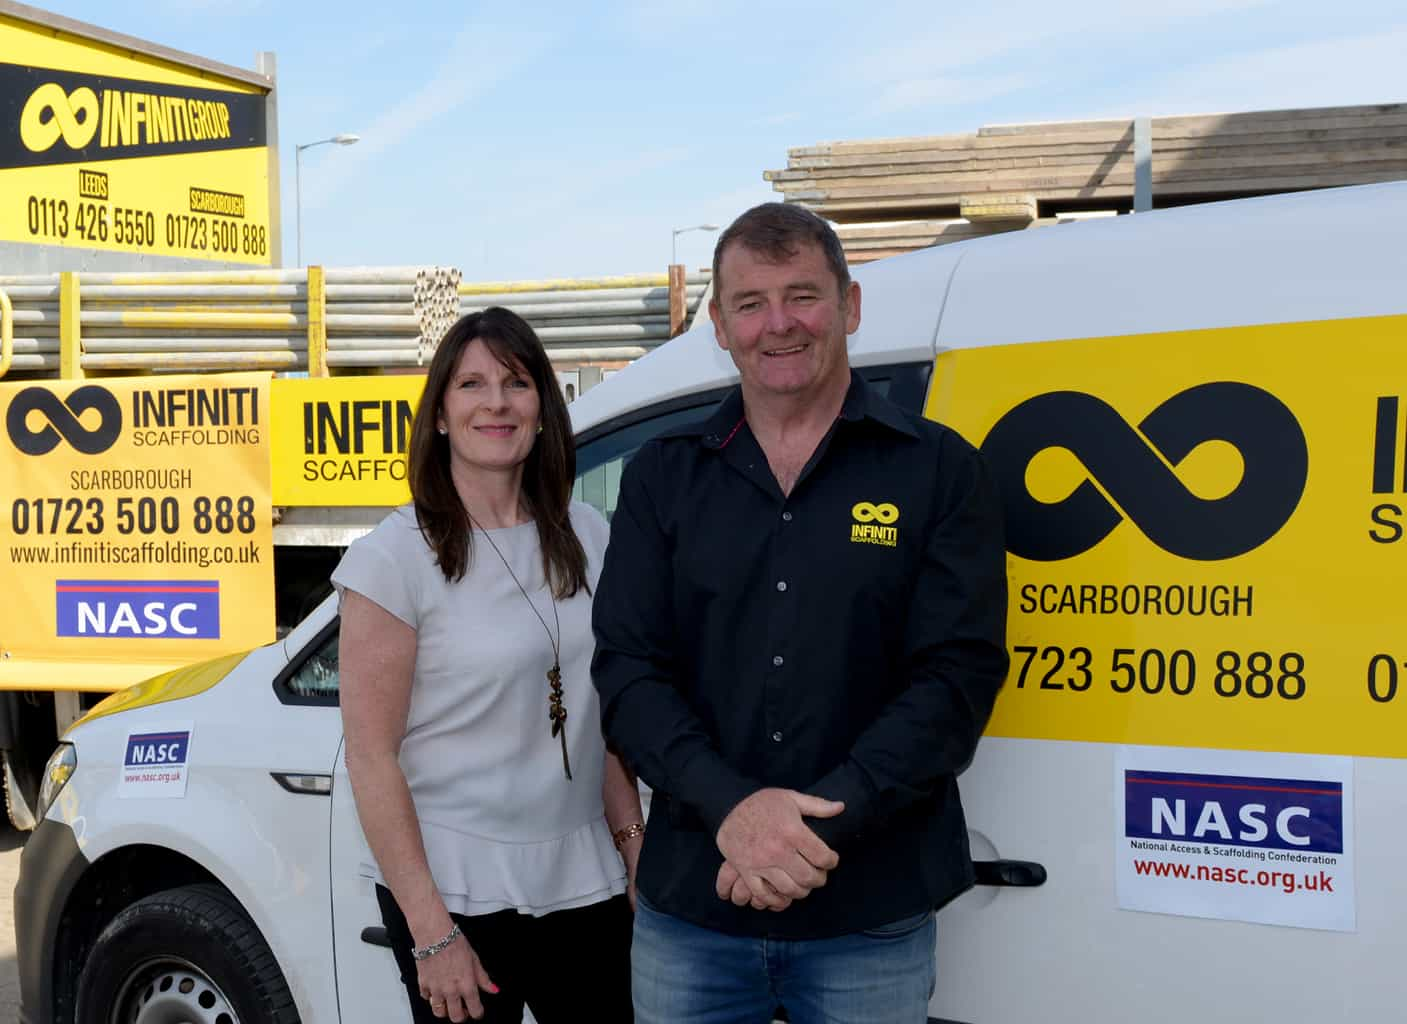 North Yorkshire scaffolding firm awarded top accreditation